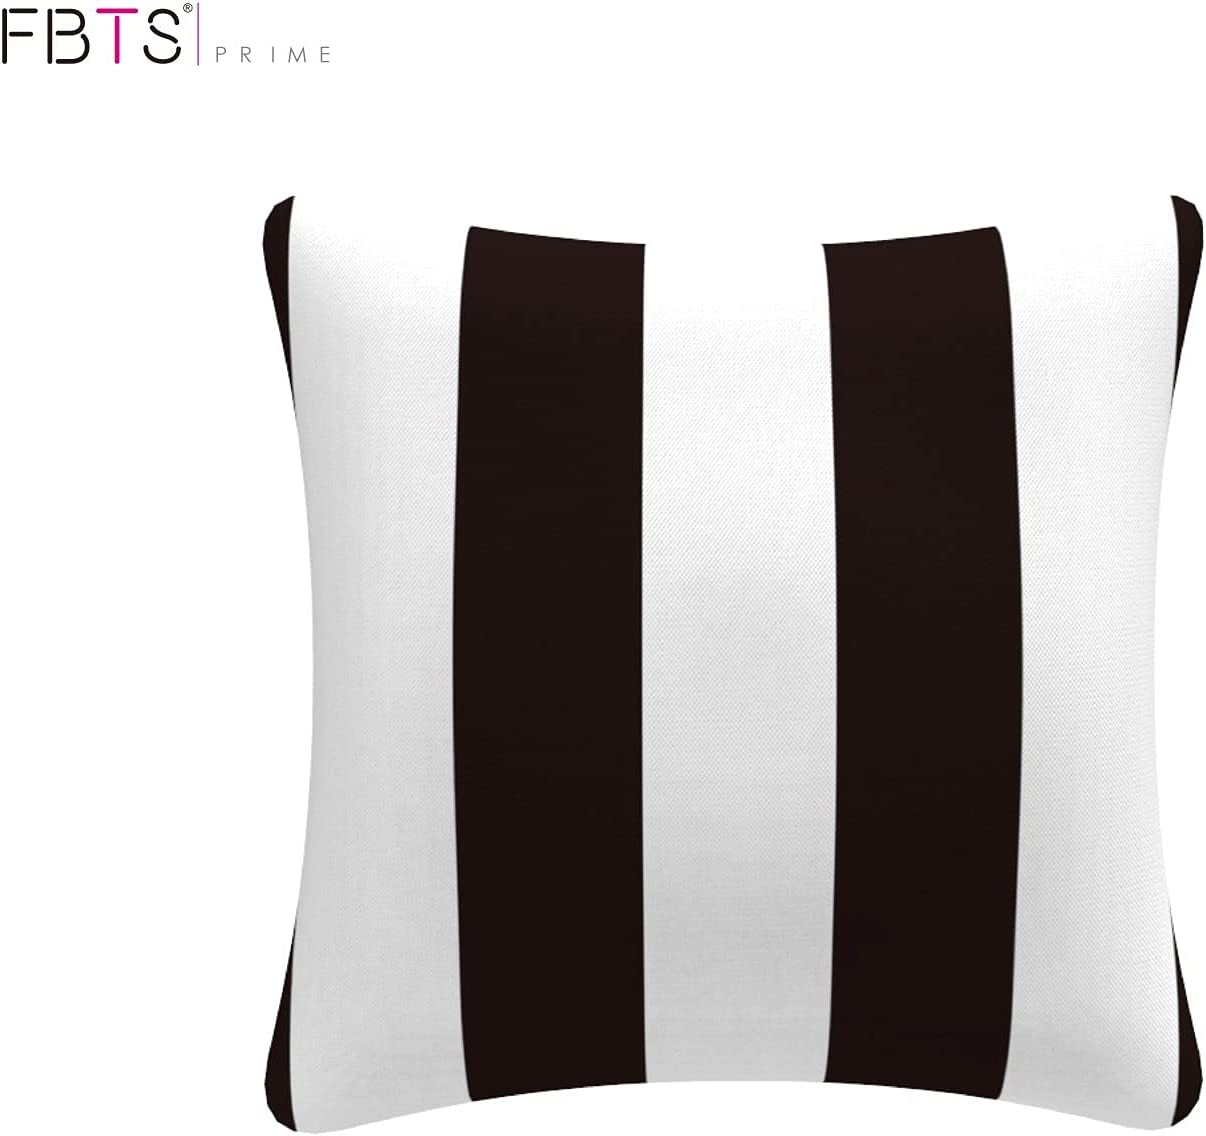 FBTS Prime Outdoor Decorative Pillows with Insert Black and White Stripe  Patio Accent Throw Pillows 20x20 Inch Square Toss Pillows for Couch Bed  Sofa ...